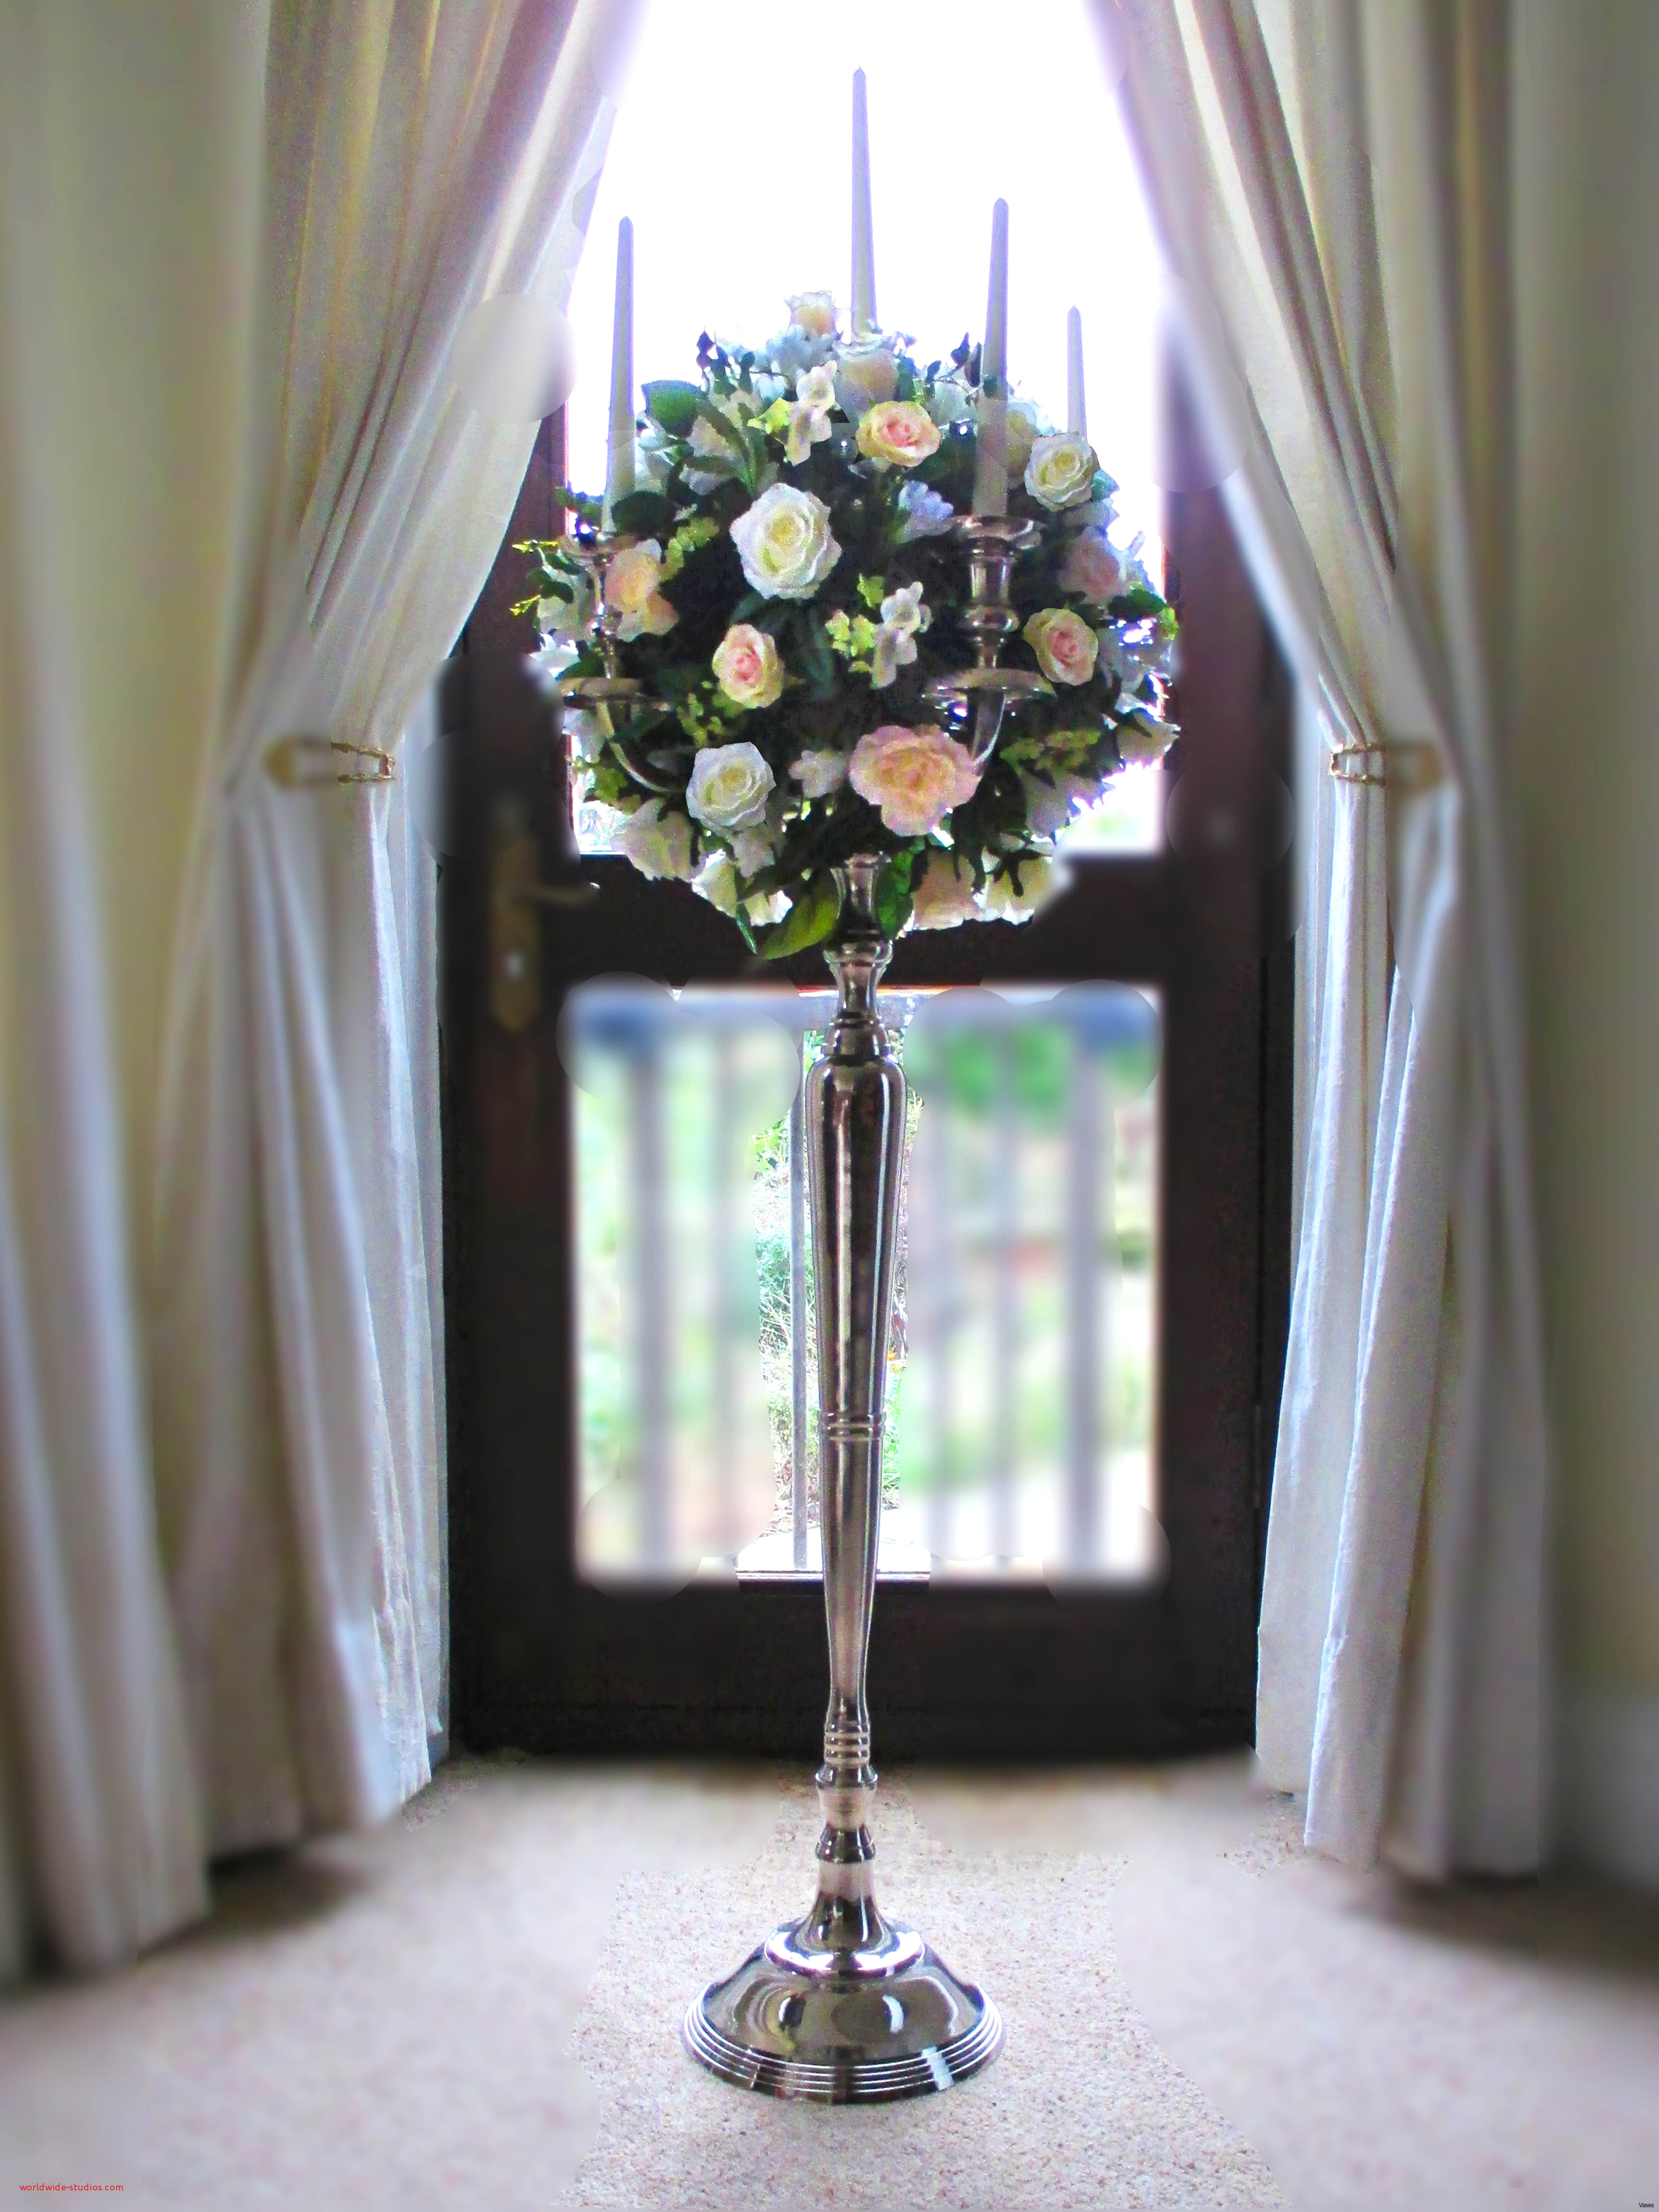 trumpet vase wedding centerpieces of silver vases for weddings www topsimages com regarding top result diy wedding ideas for a tight budget luxury cheap wedding bouquets packages vases jpg